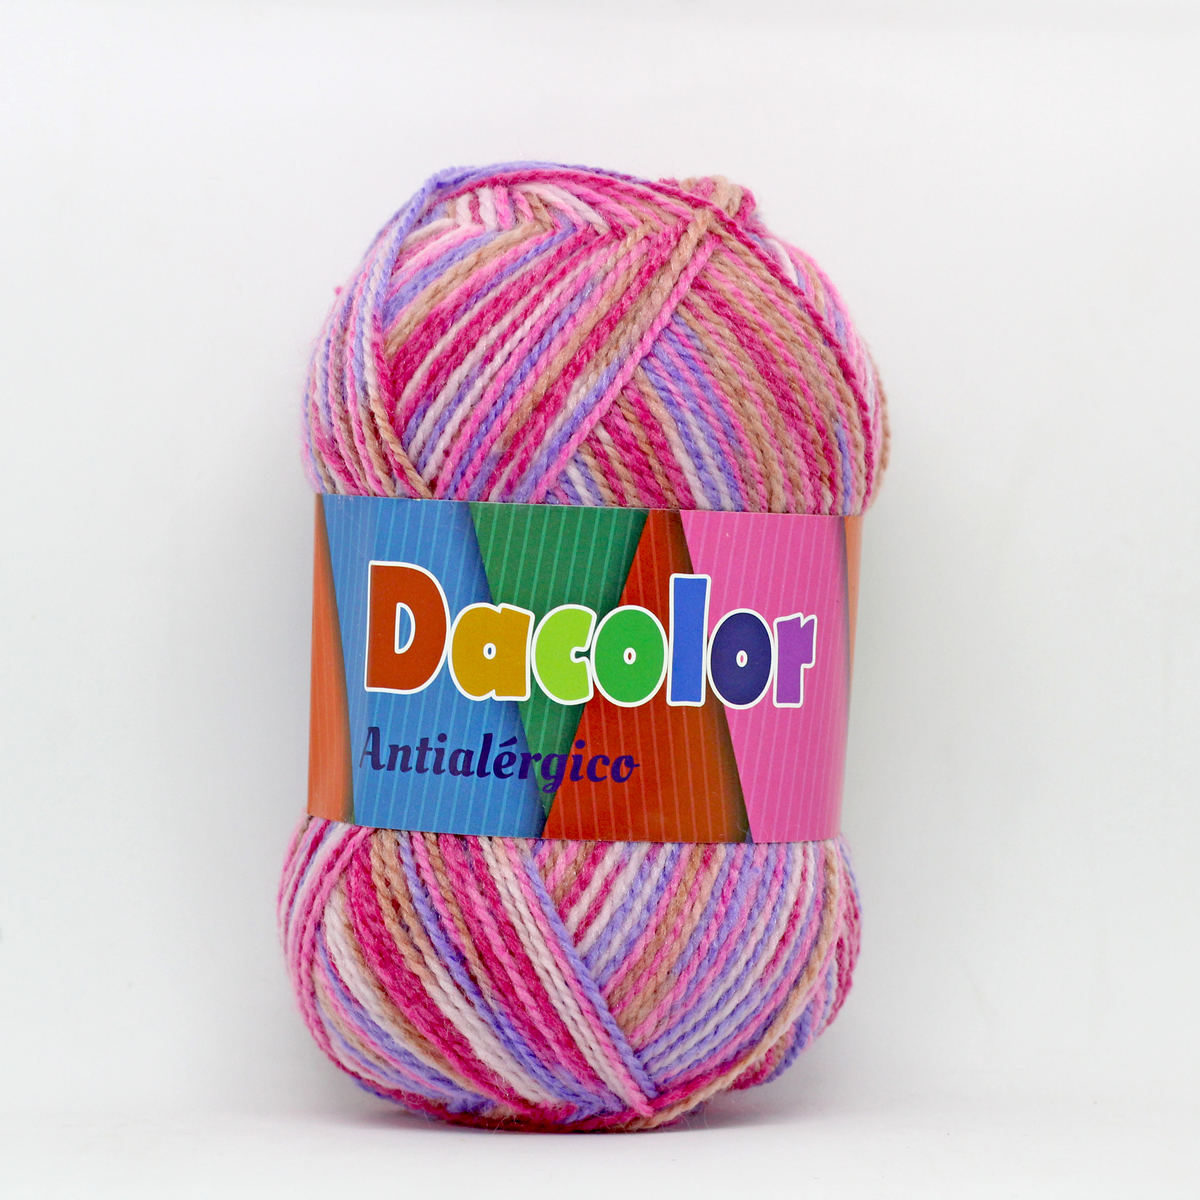 Dacolor -  13